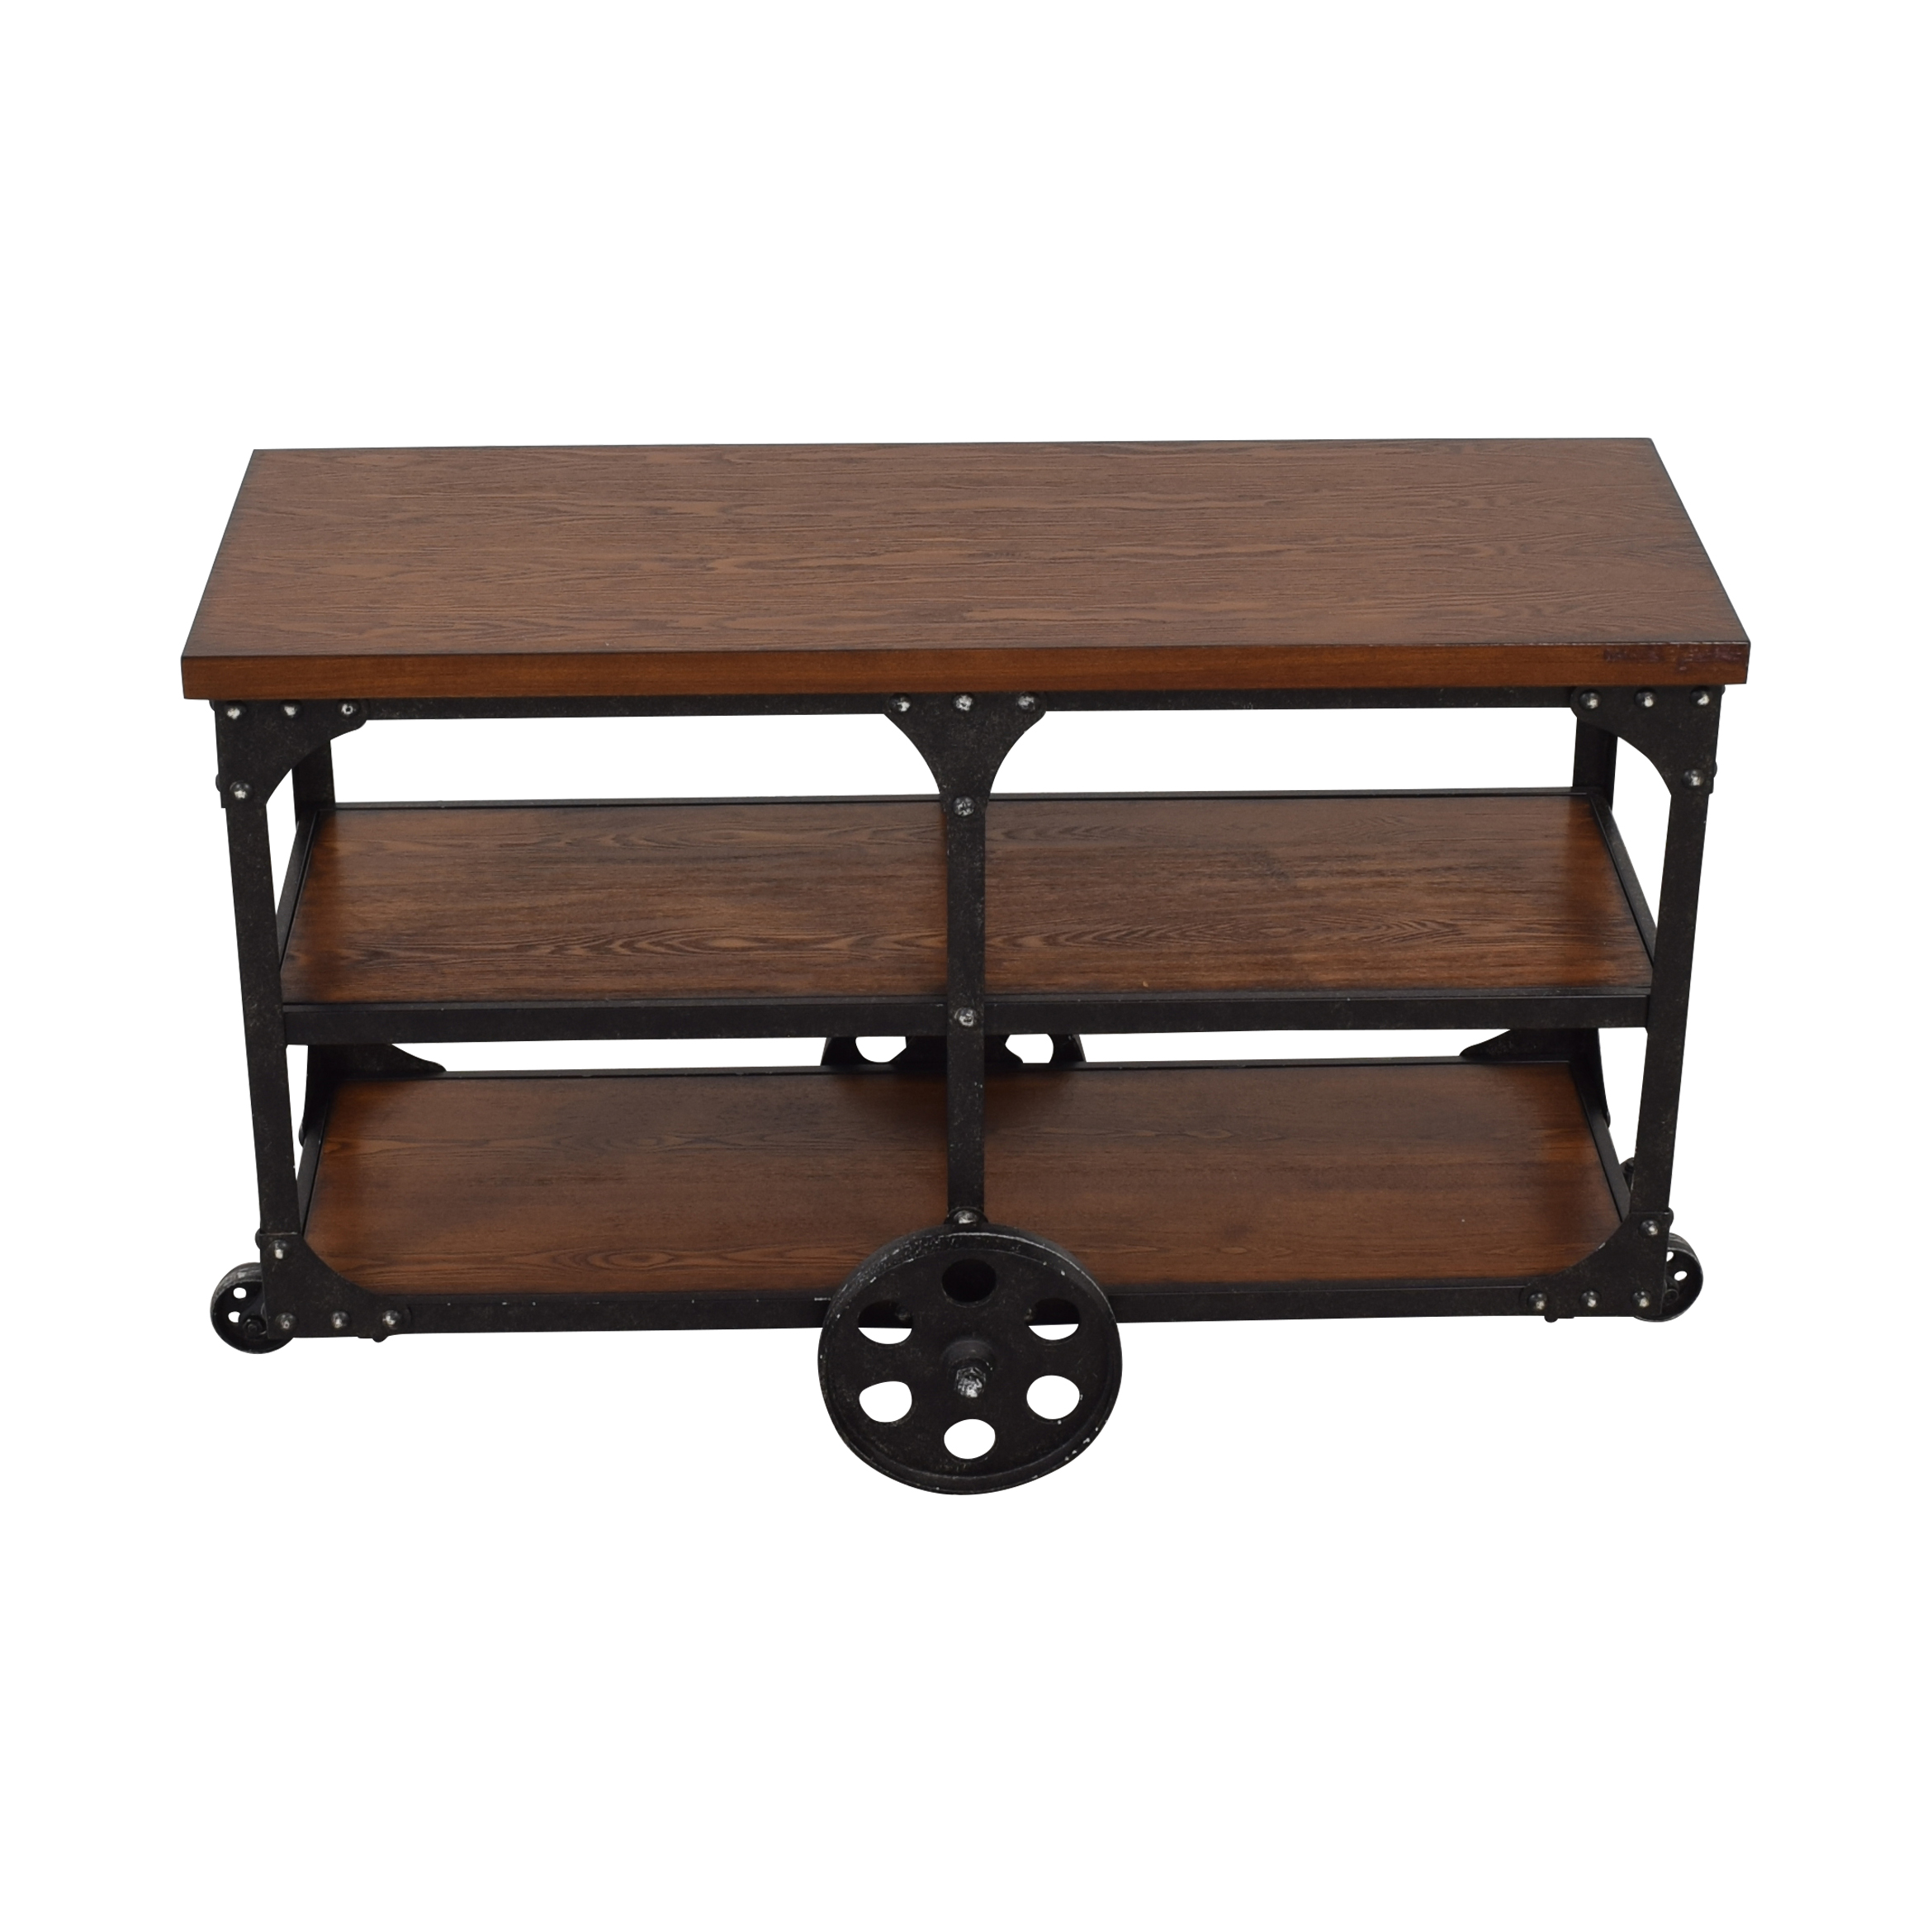 Coaster Fine Furniture Coaster Norland Rustic Side Table or Sofa Table Tables